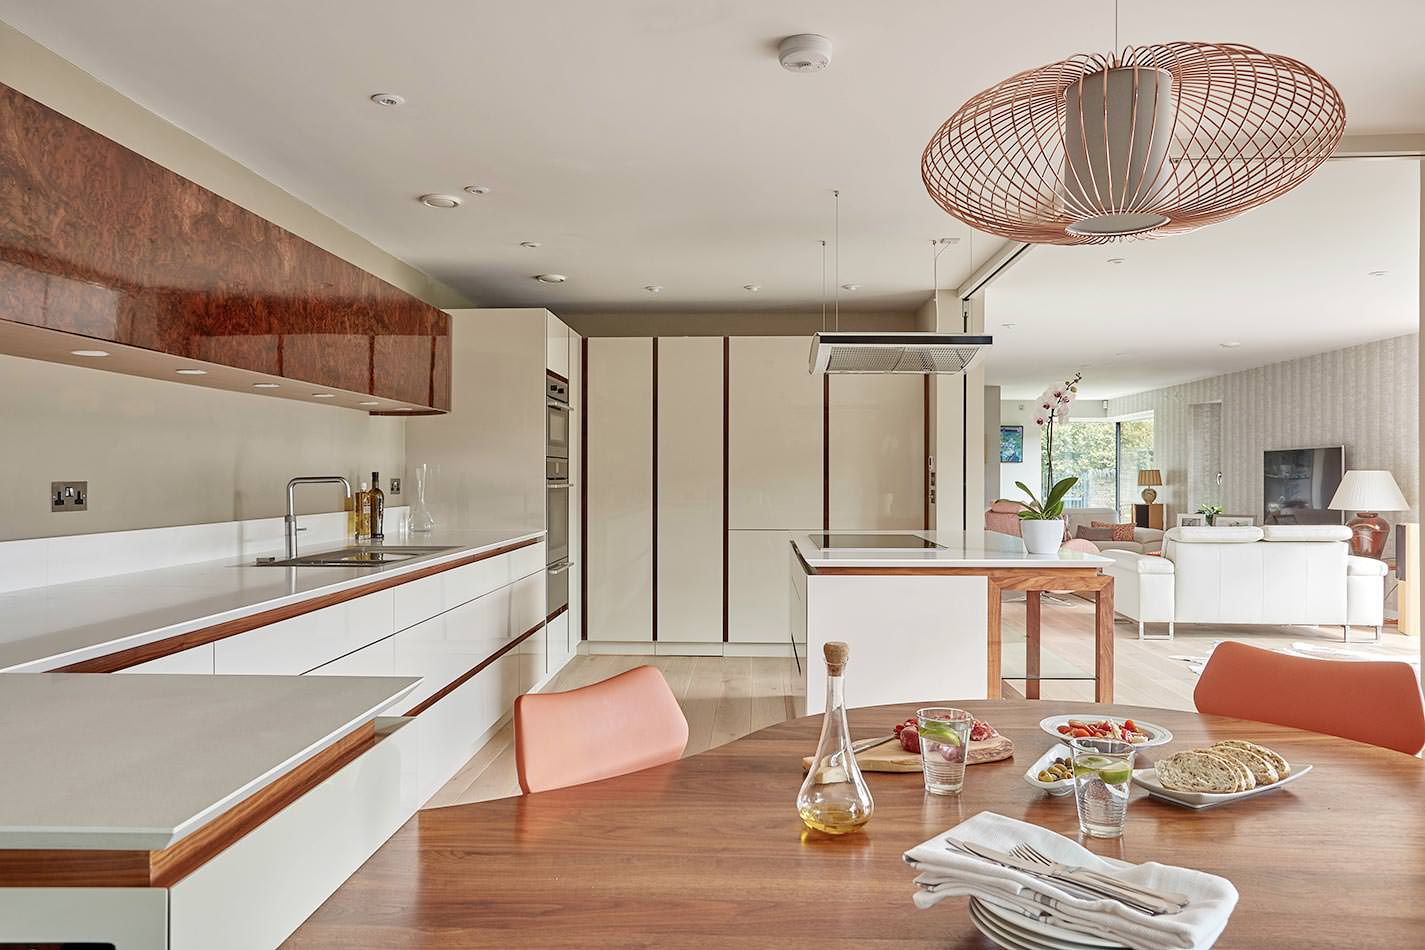 Spacious white kitchen with polished white cabinets and drawers, kitchen island, recessed lighting, and hardwood floors.